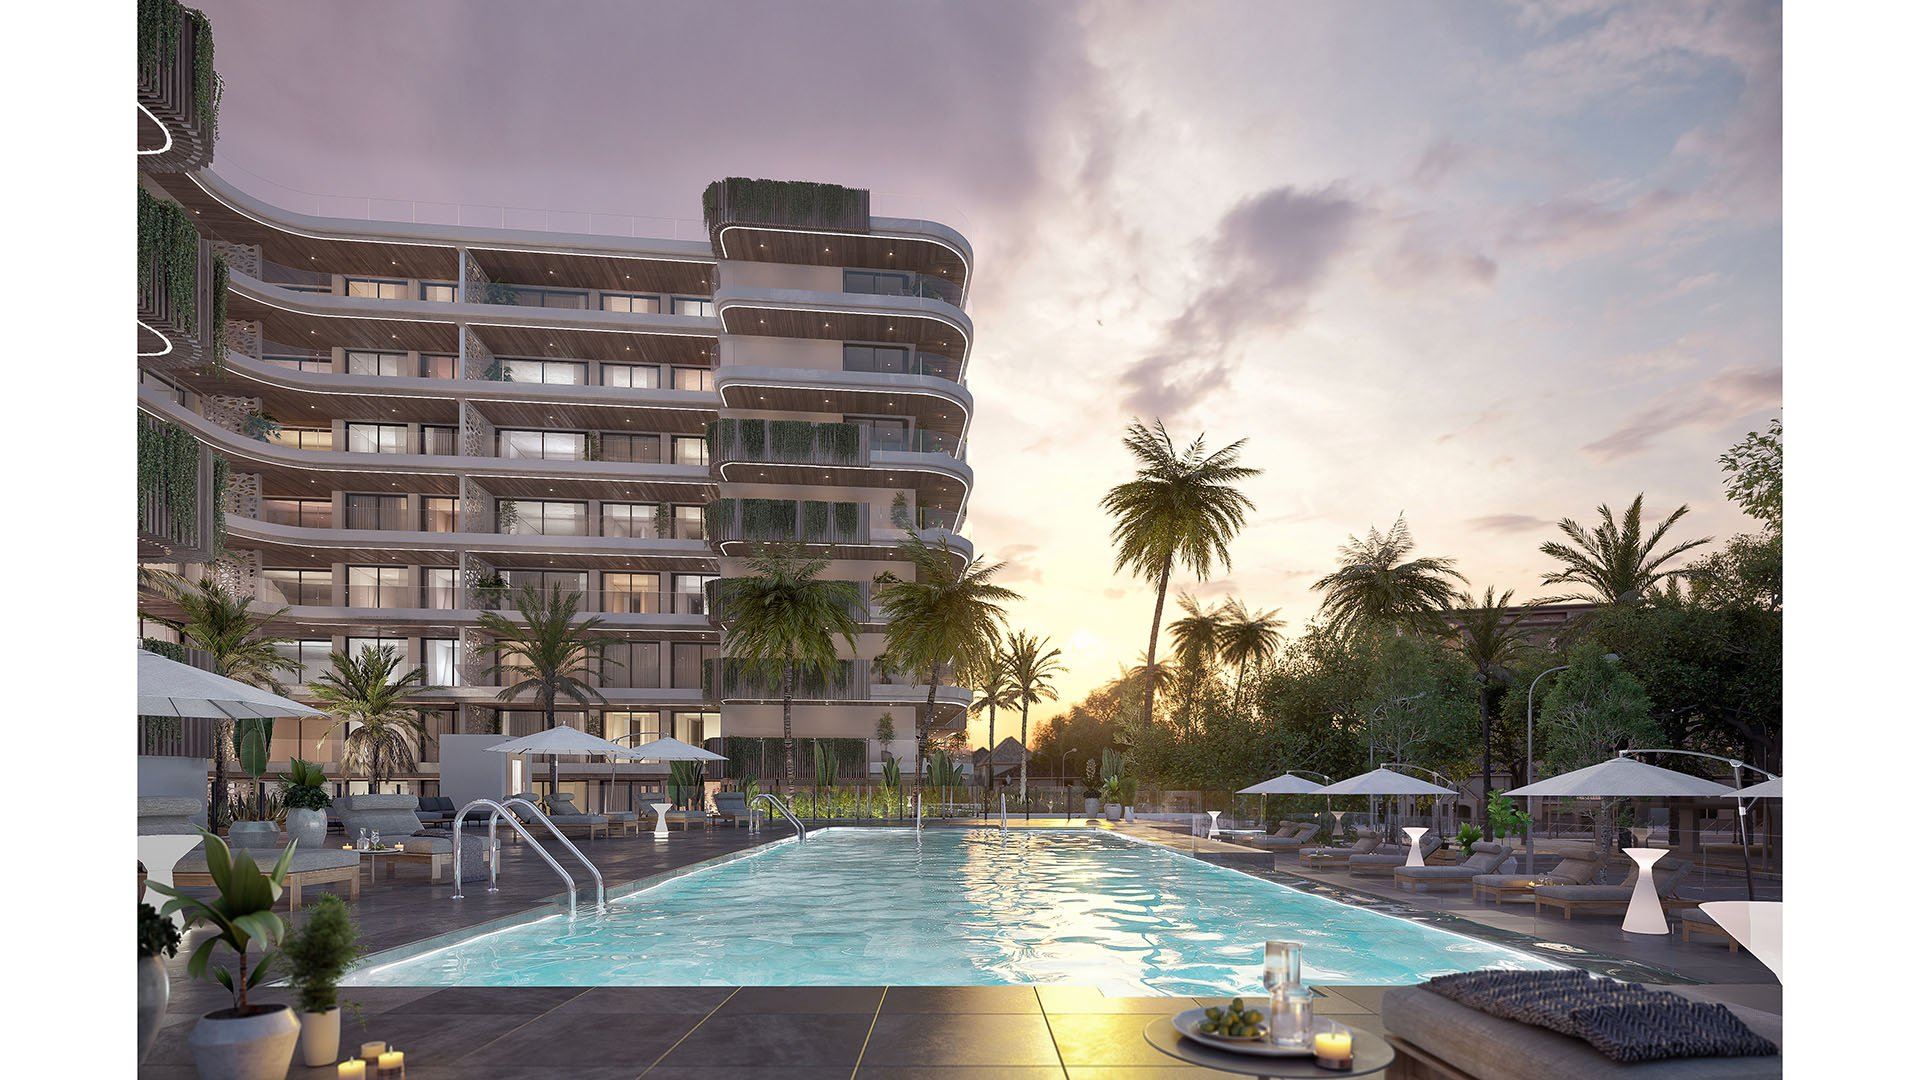 Jade Tower: Luxury apartments in the heart of Fuengirola